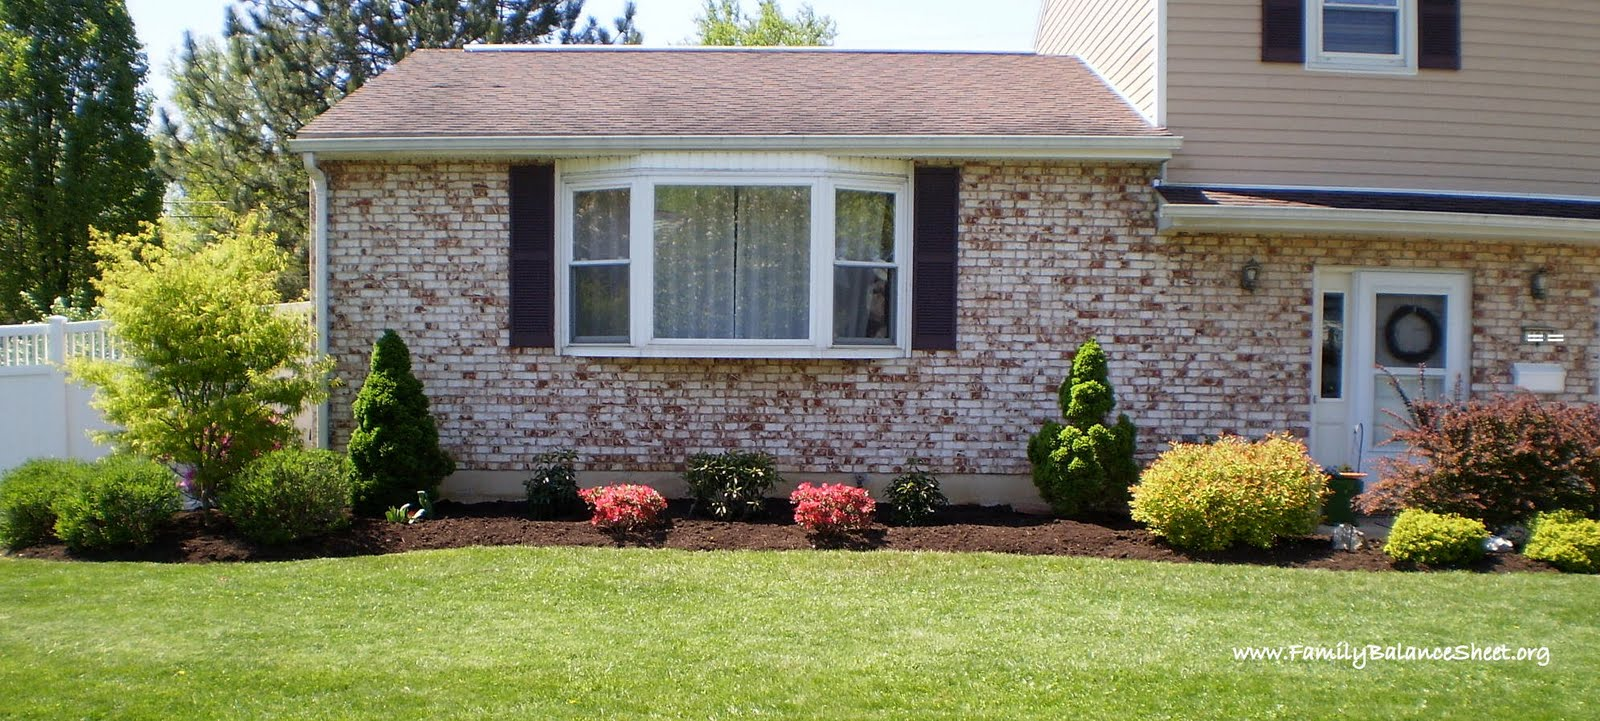 15 tips to help you design your front yard save money too for Landscaping pictures for front yard